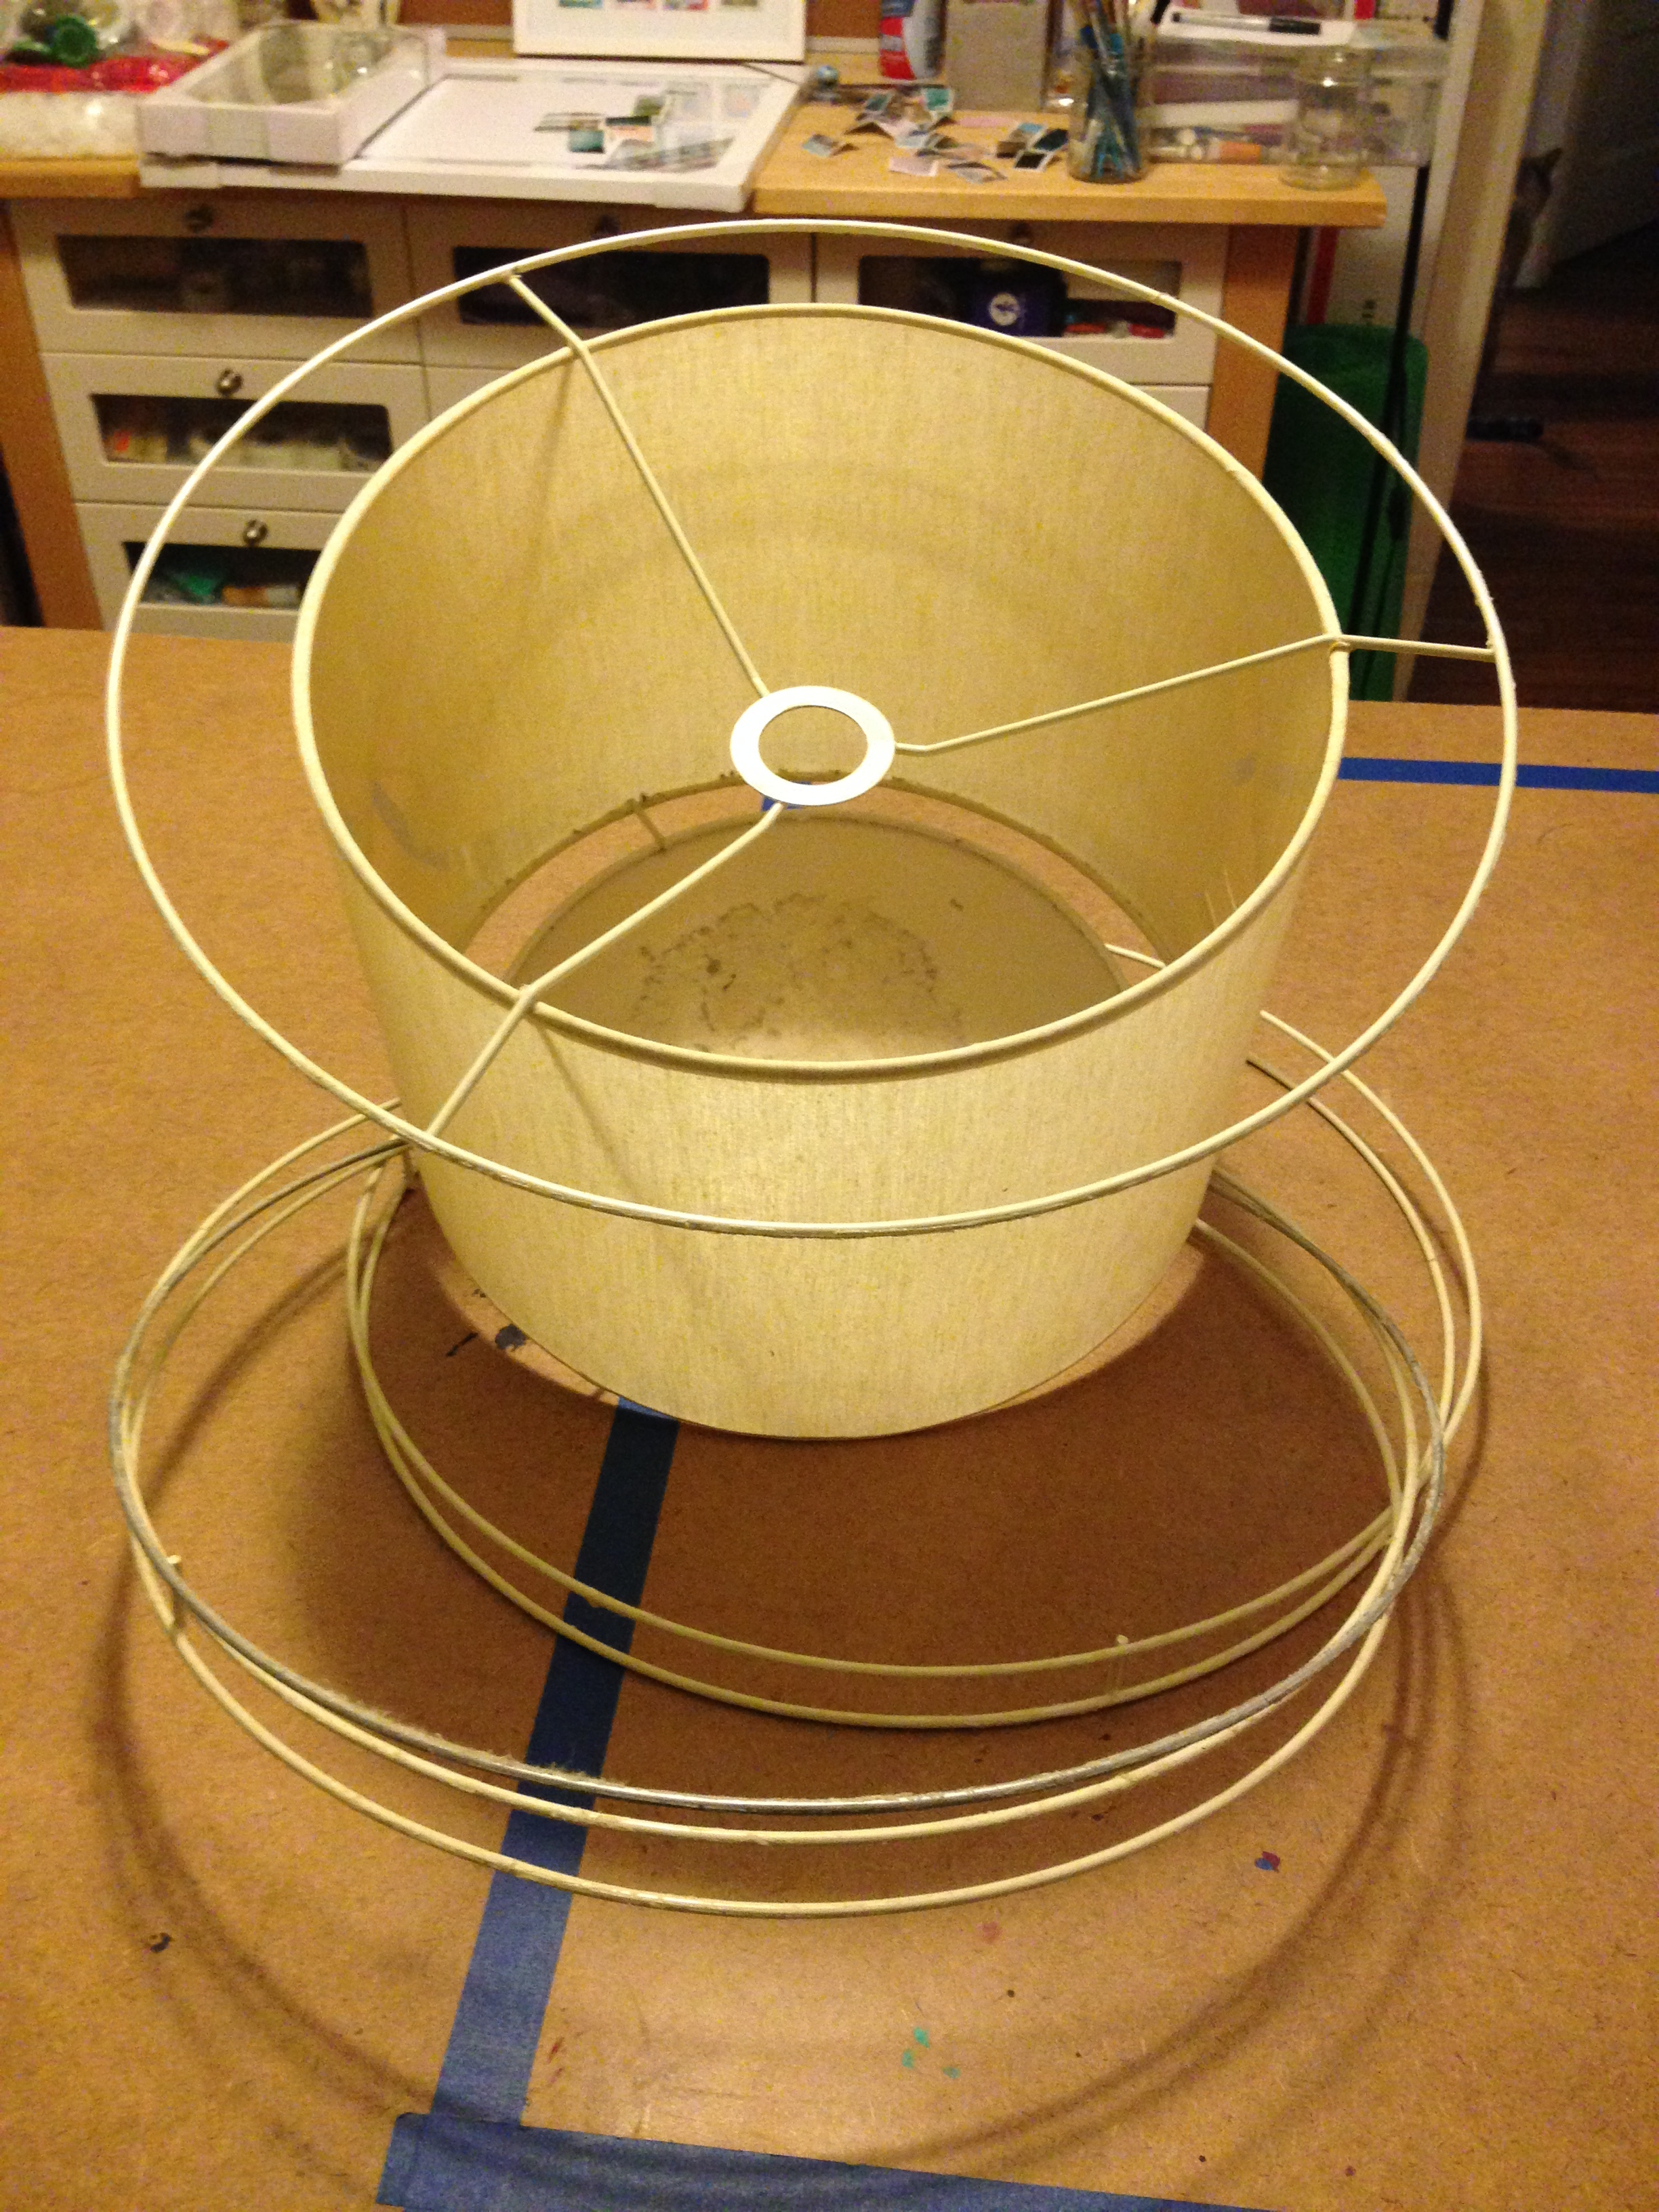 - I'd removed the outer ring and needed to clean the glue and the inner drum.